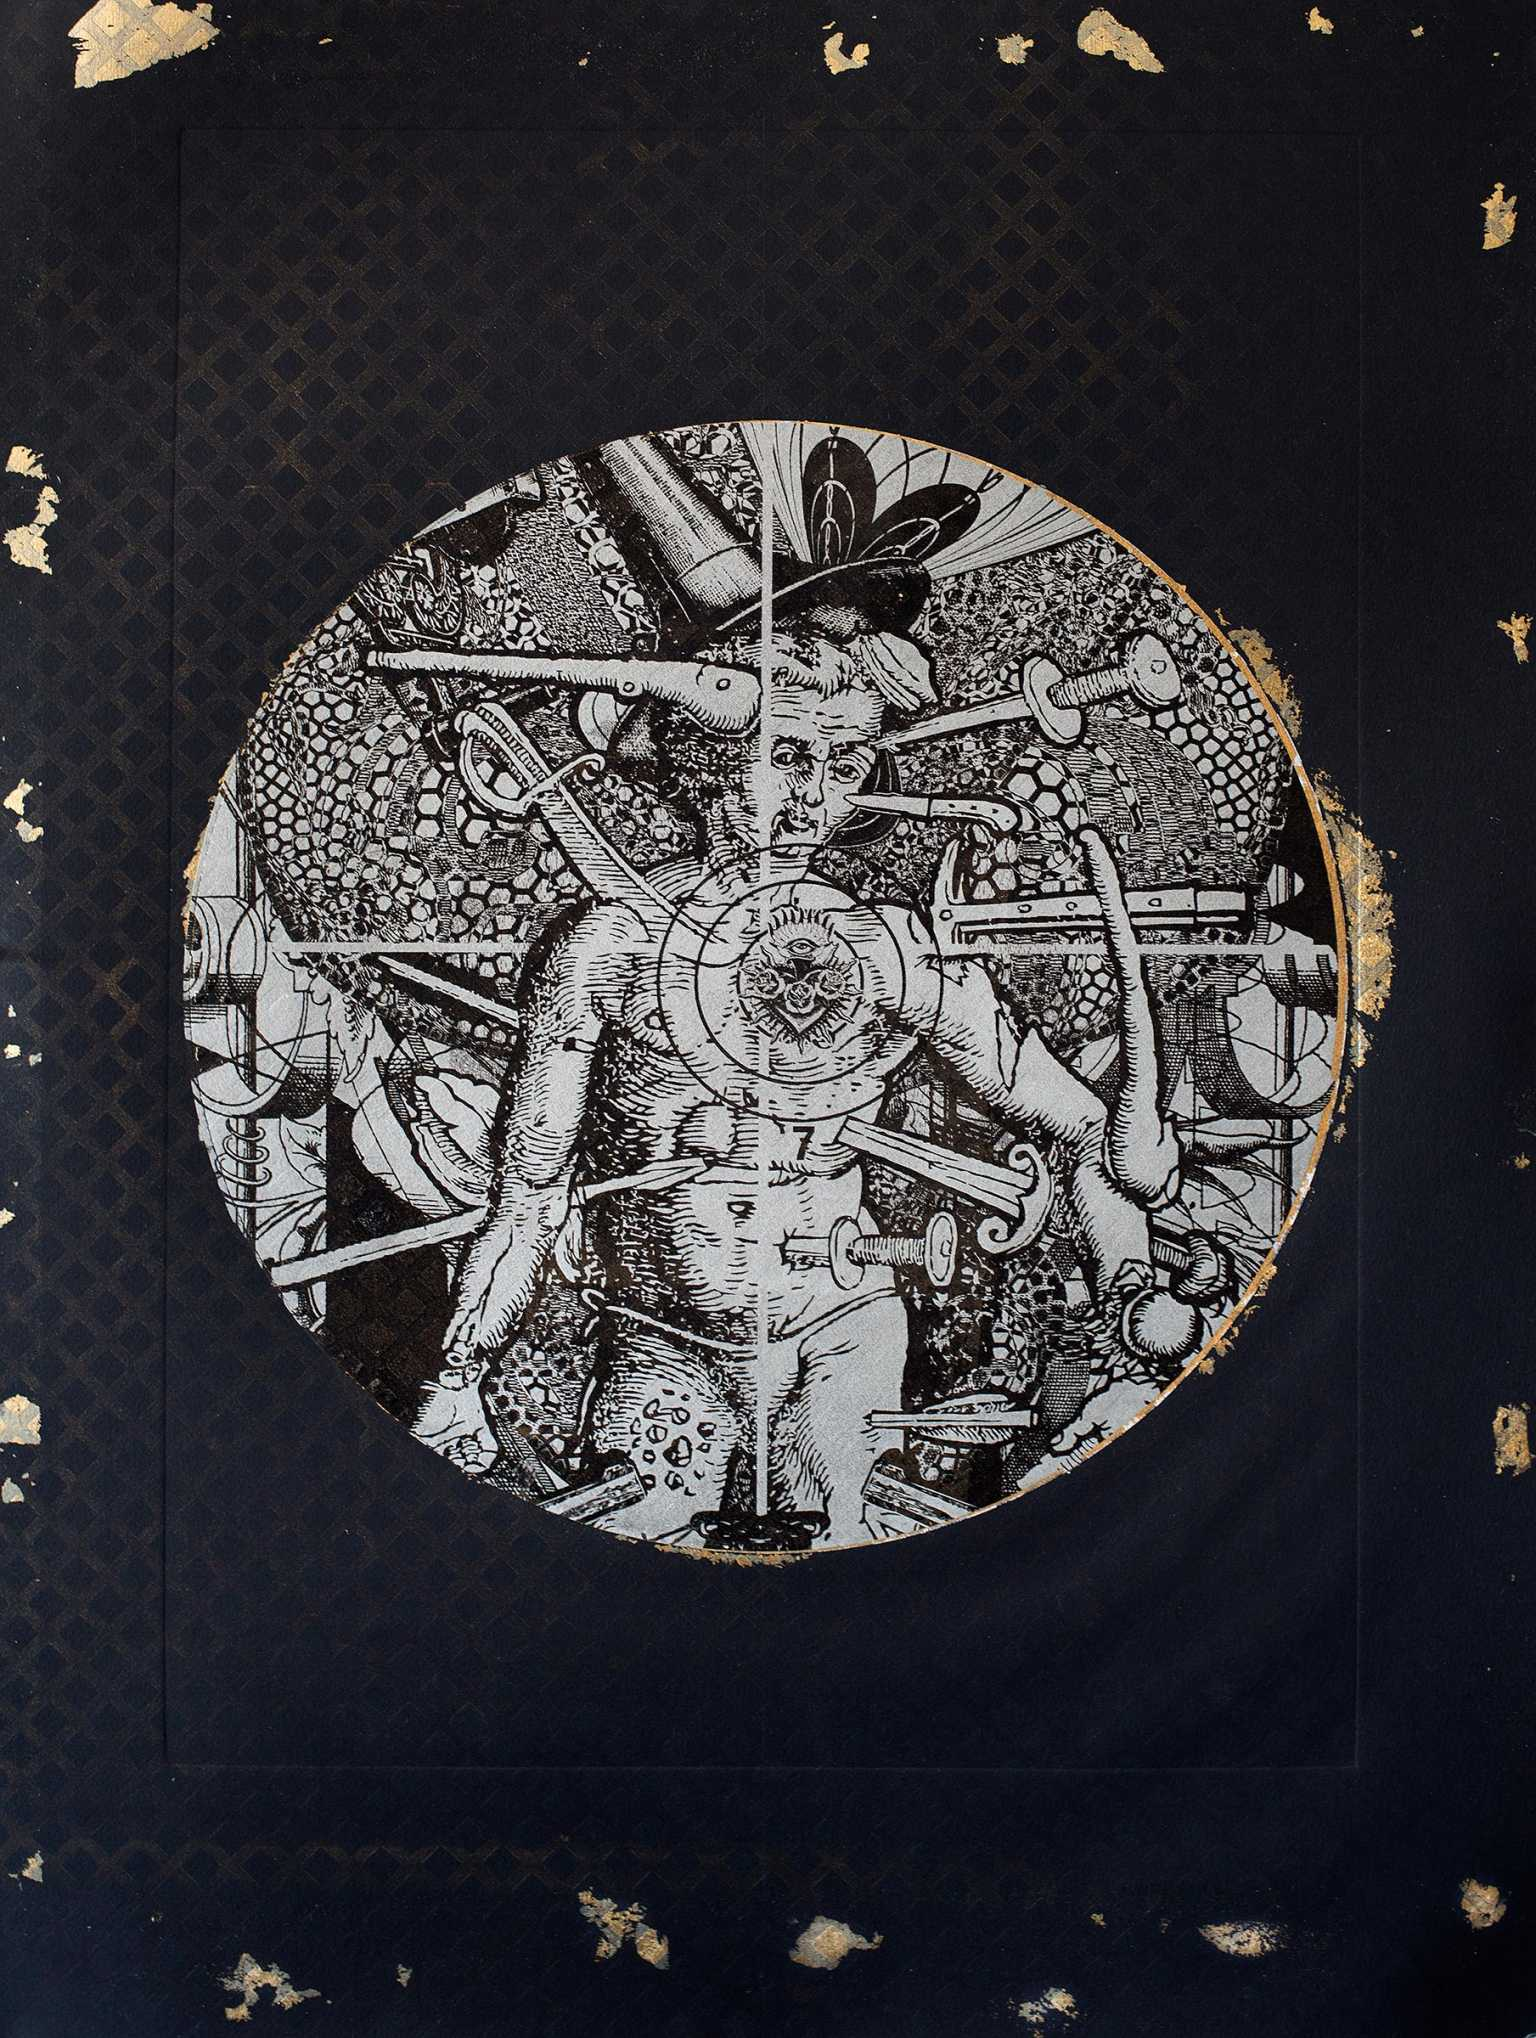 Targeted Tondo '(Eclipsed in Silver and Gold)'